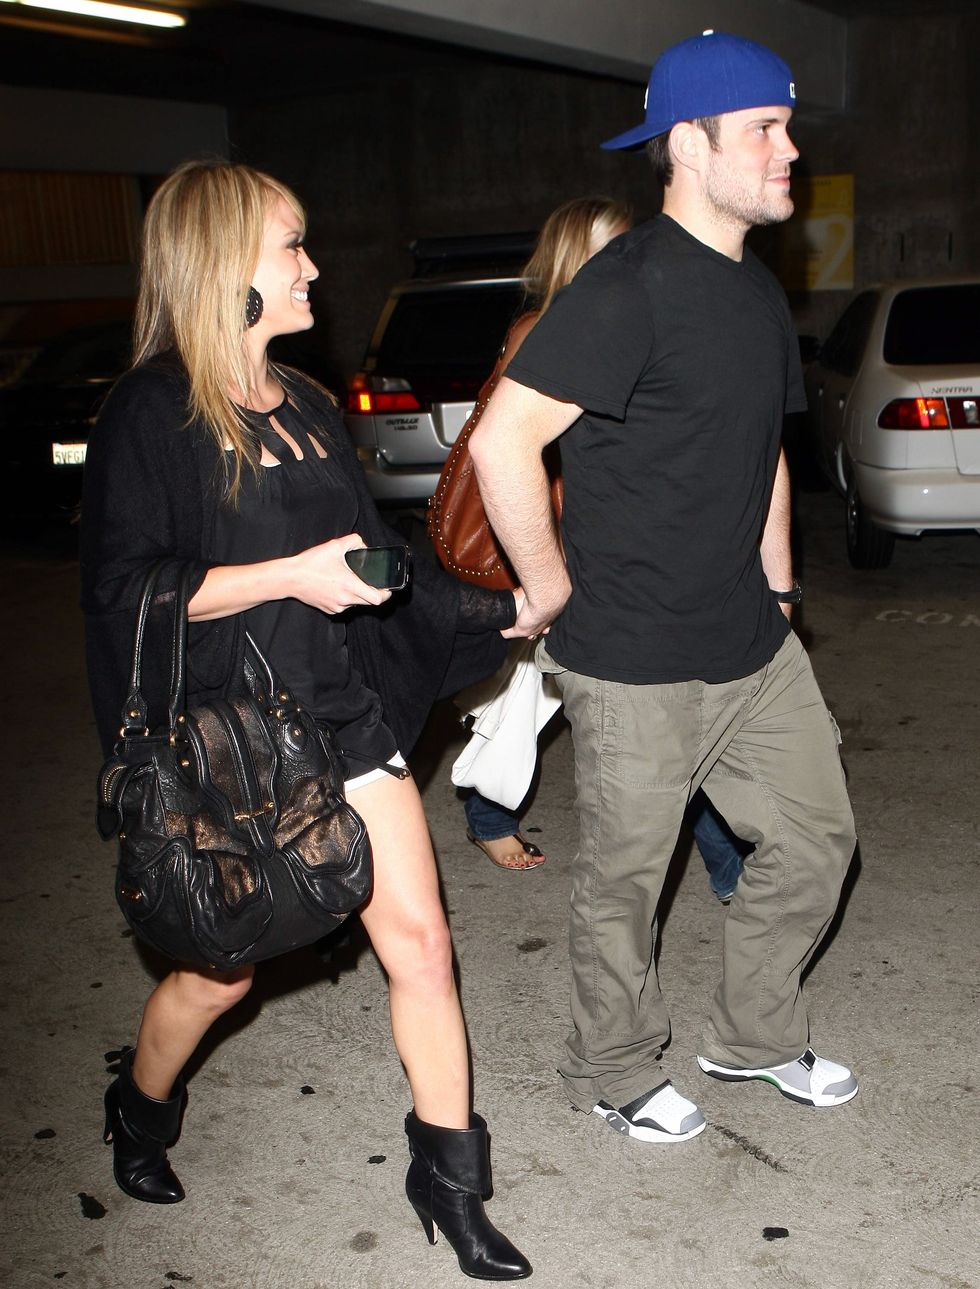 hilary-duff-leggy-candids-at-arclight-cinemas-in-hollywood-01